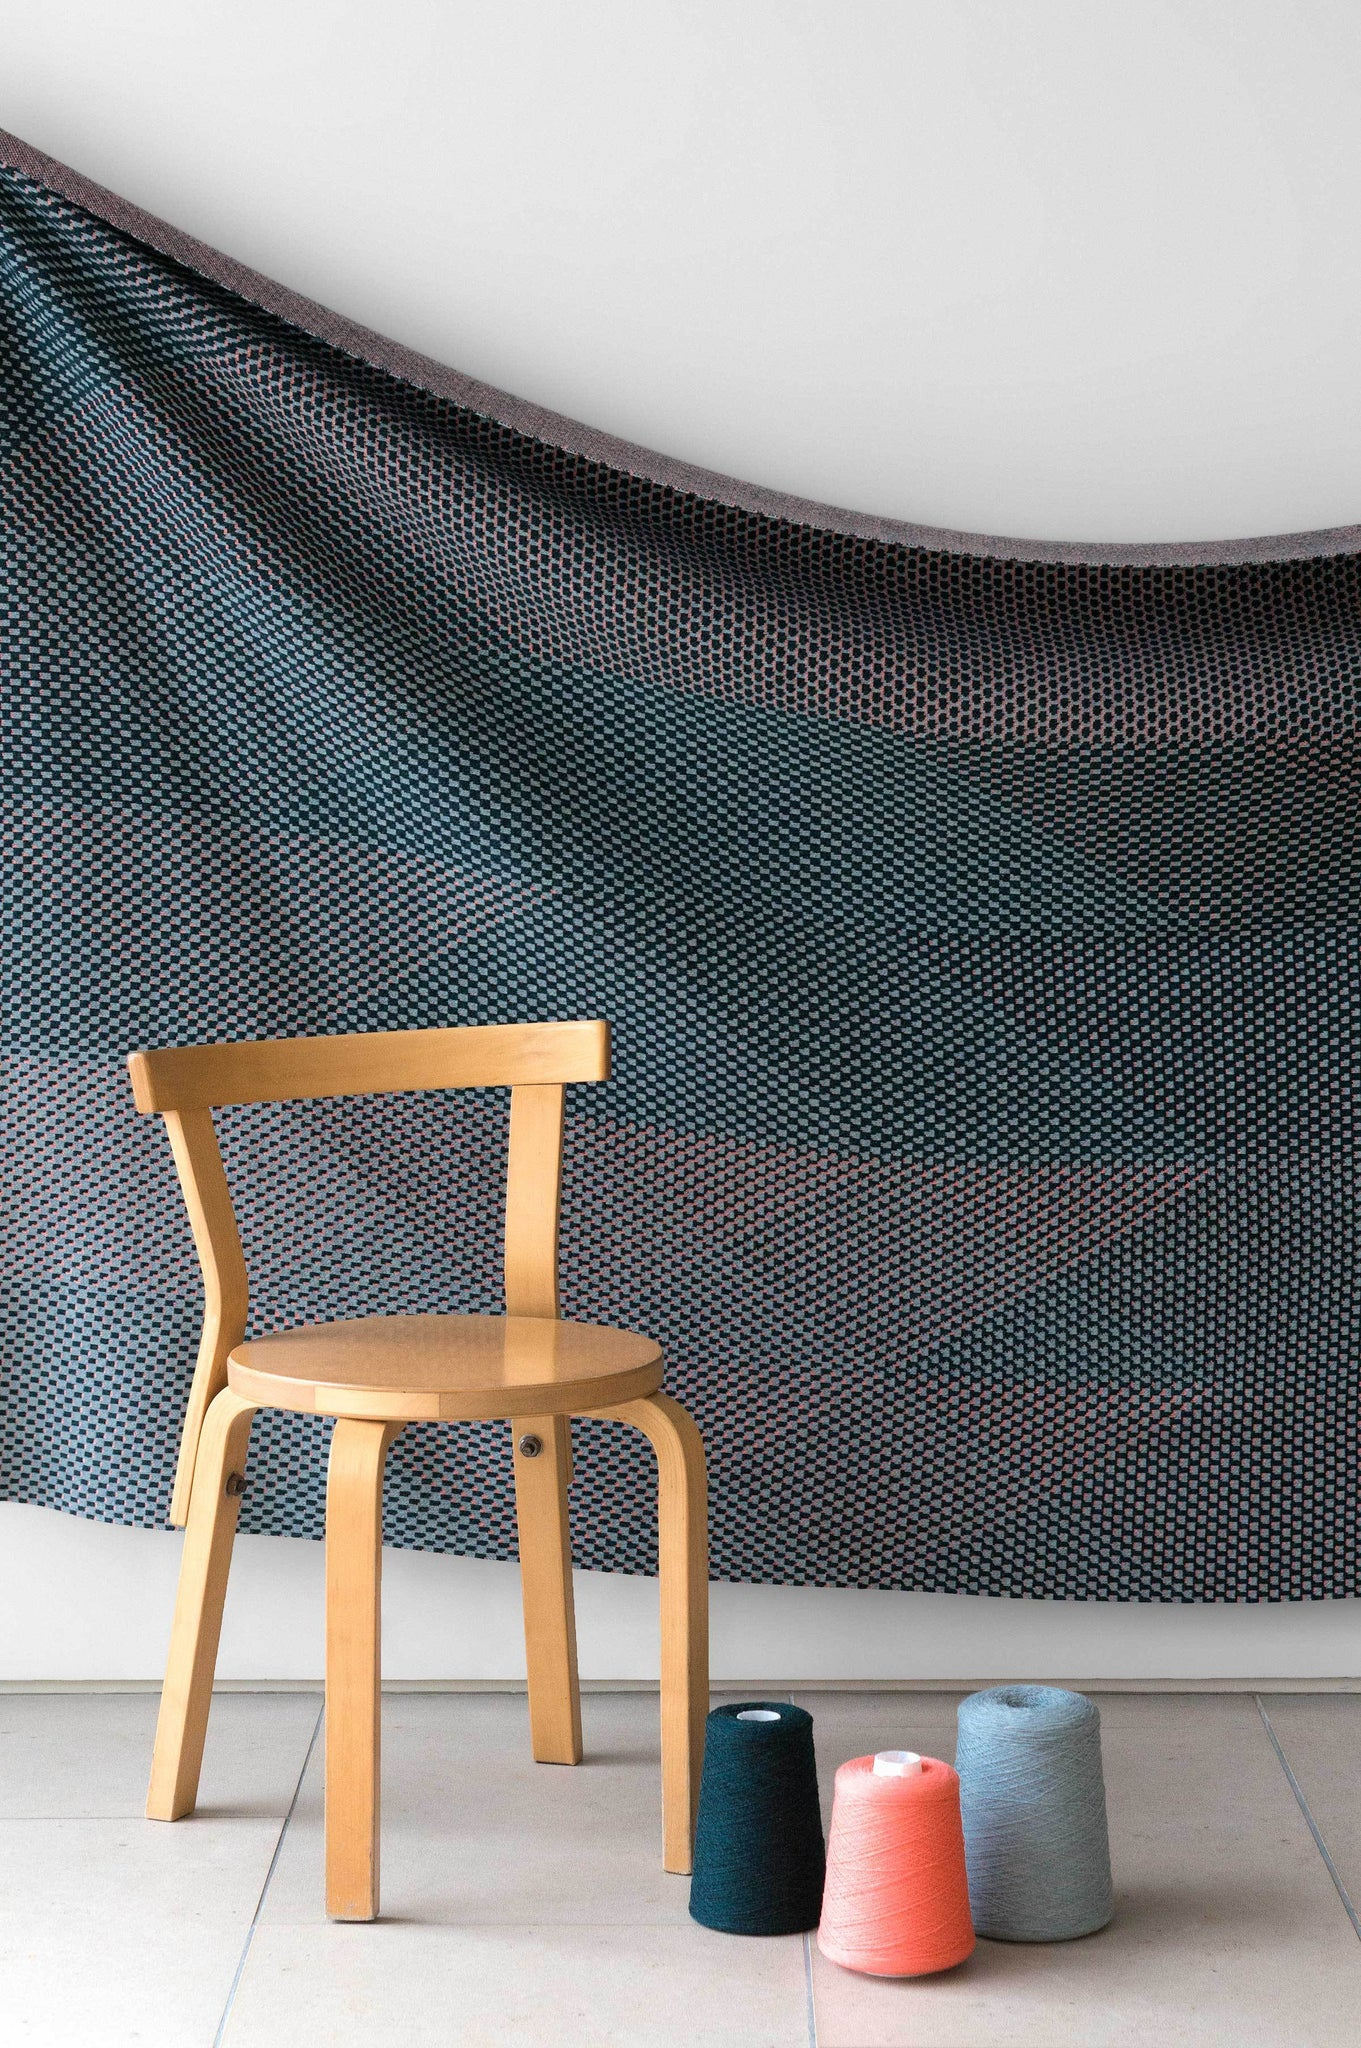 Seaward Blanket - Hilary Grant + Pier Arts Centre